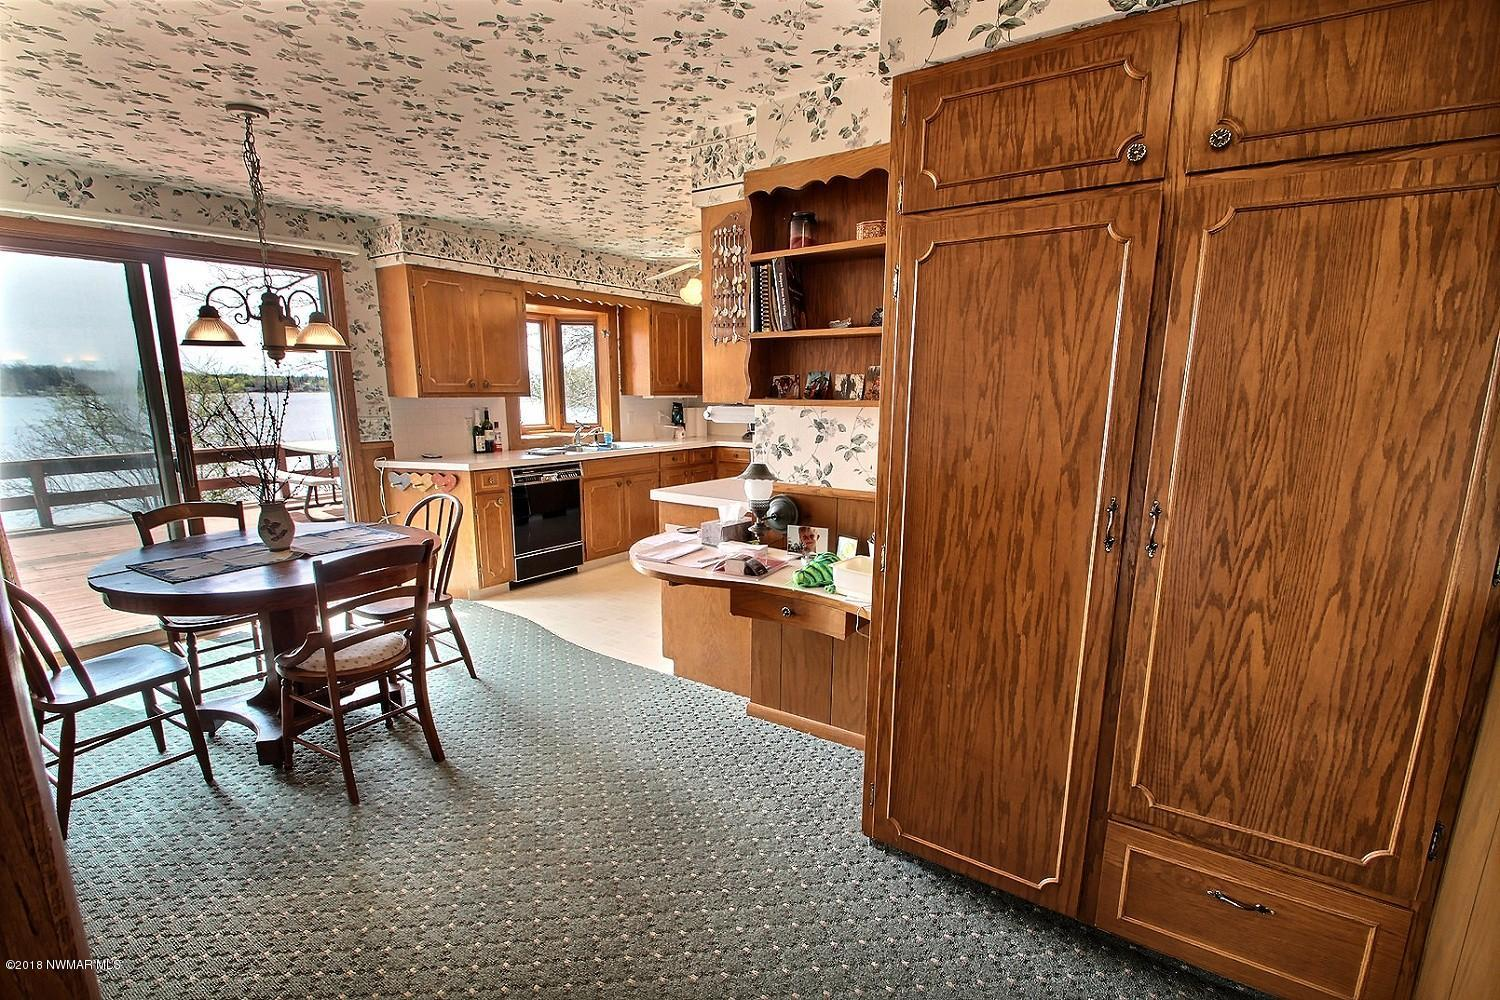 View of the dining room looking into the kitchen. Spread out and have plenty of space for all the family meals. Enjoy wonderful built-ins throughout the home.